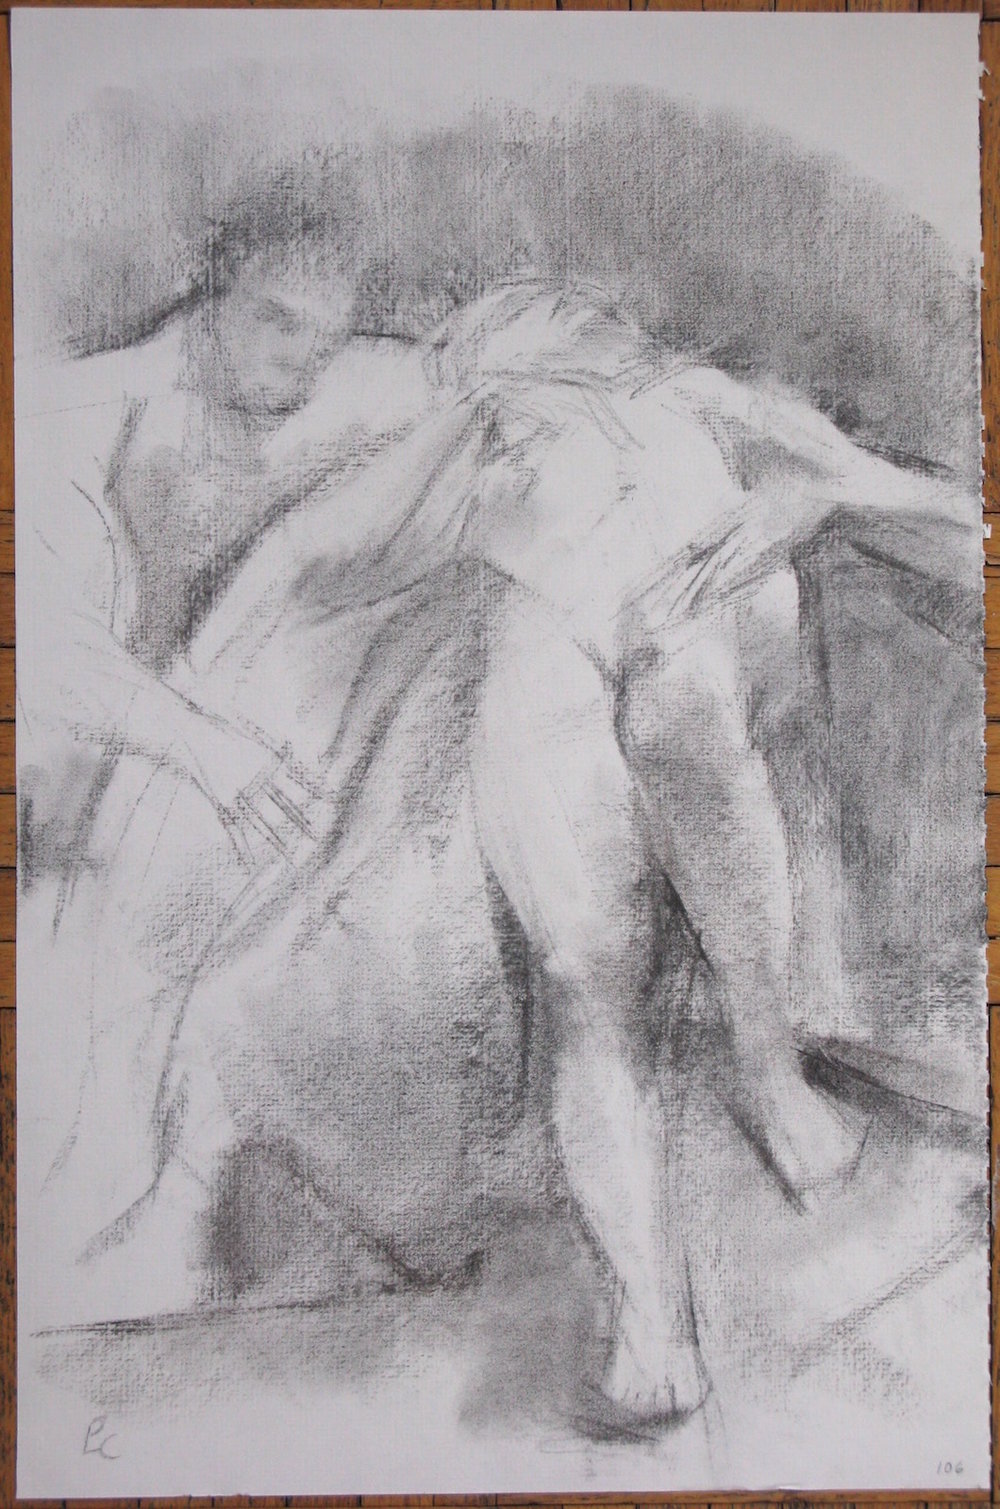 Nymph and Satyr, 18 x 12 inches, charcoal